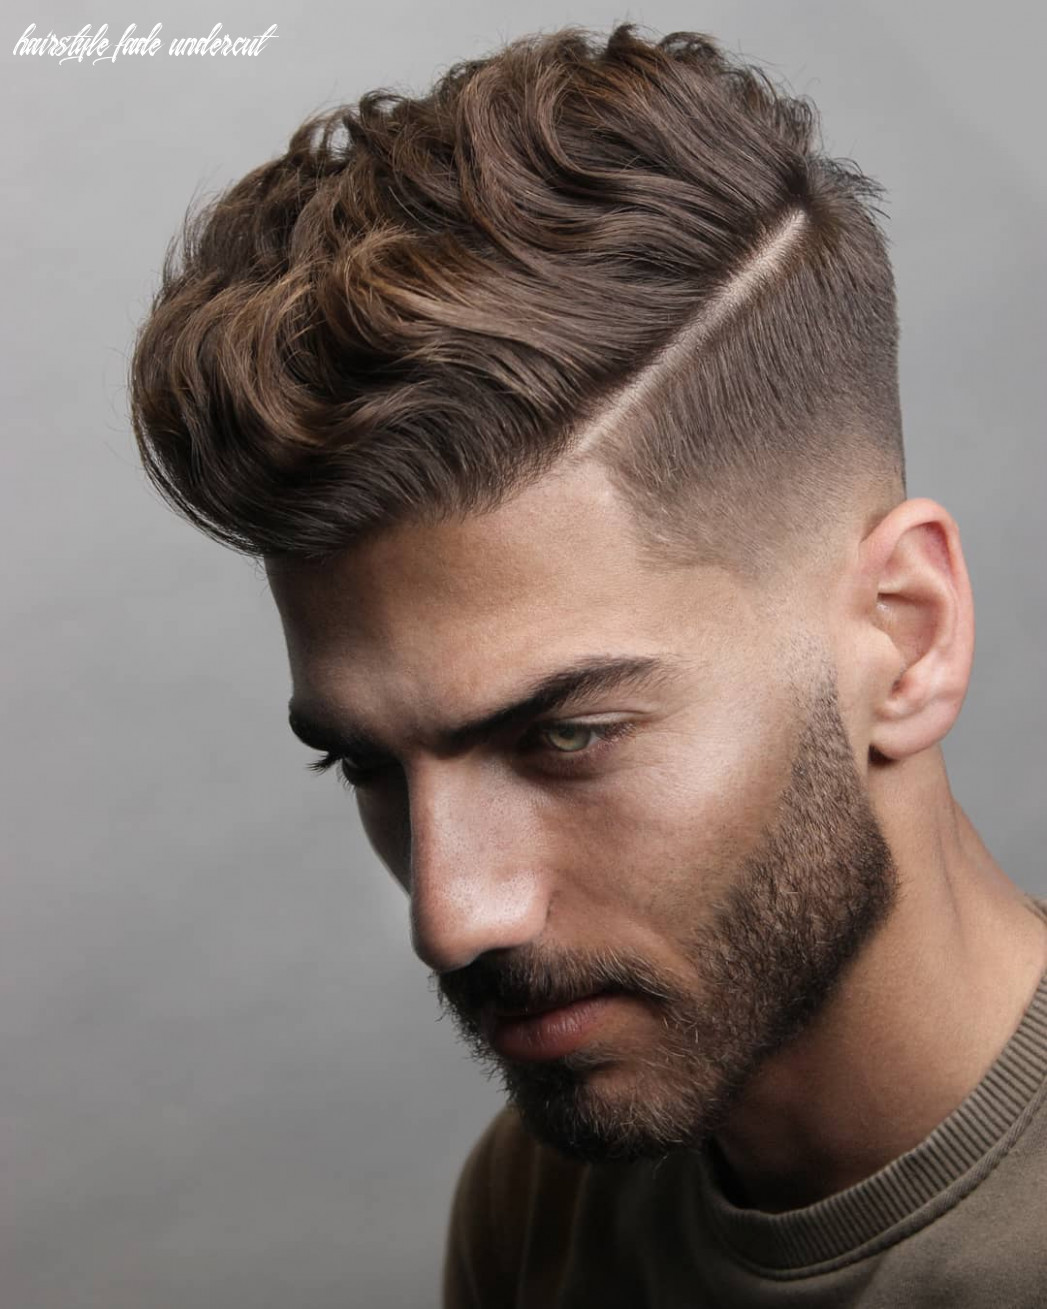 10 short on sides long on top haircuts for men   man haircuts hairstyle fade undercut